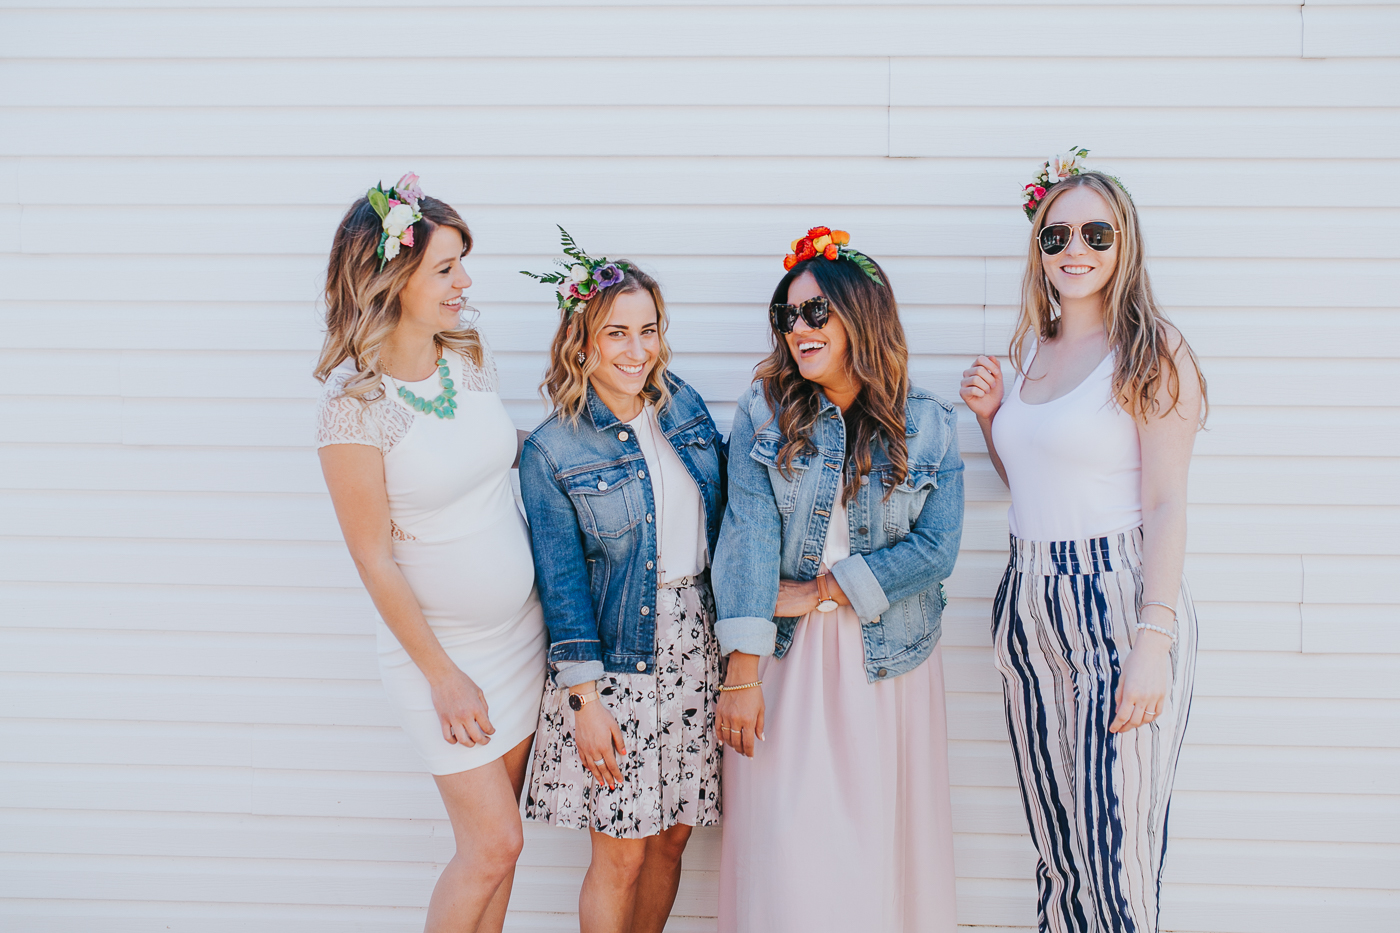 Toronto bloggers are wearing spring outfits and the flower crowns they made at Wildnorth Flowers